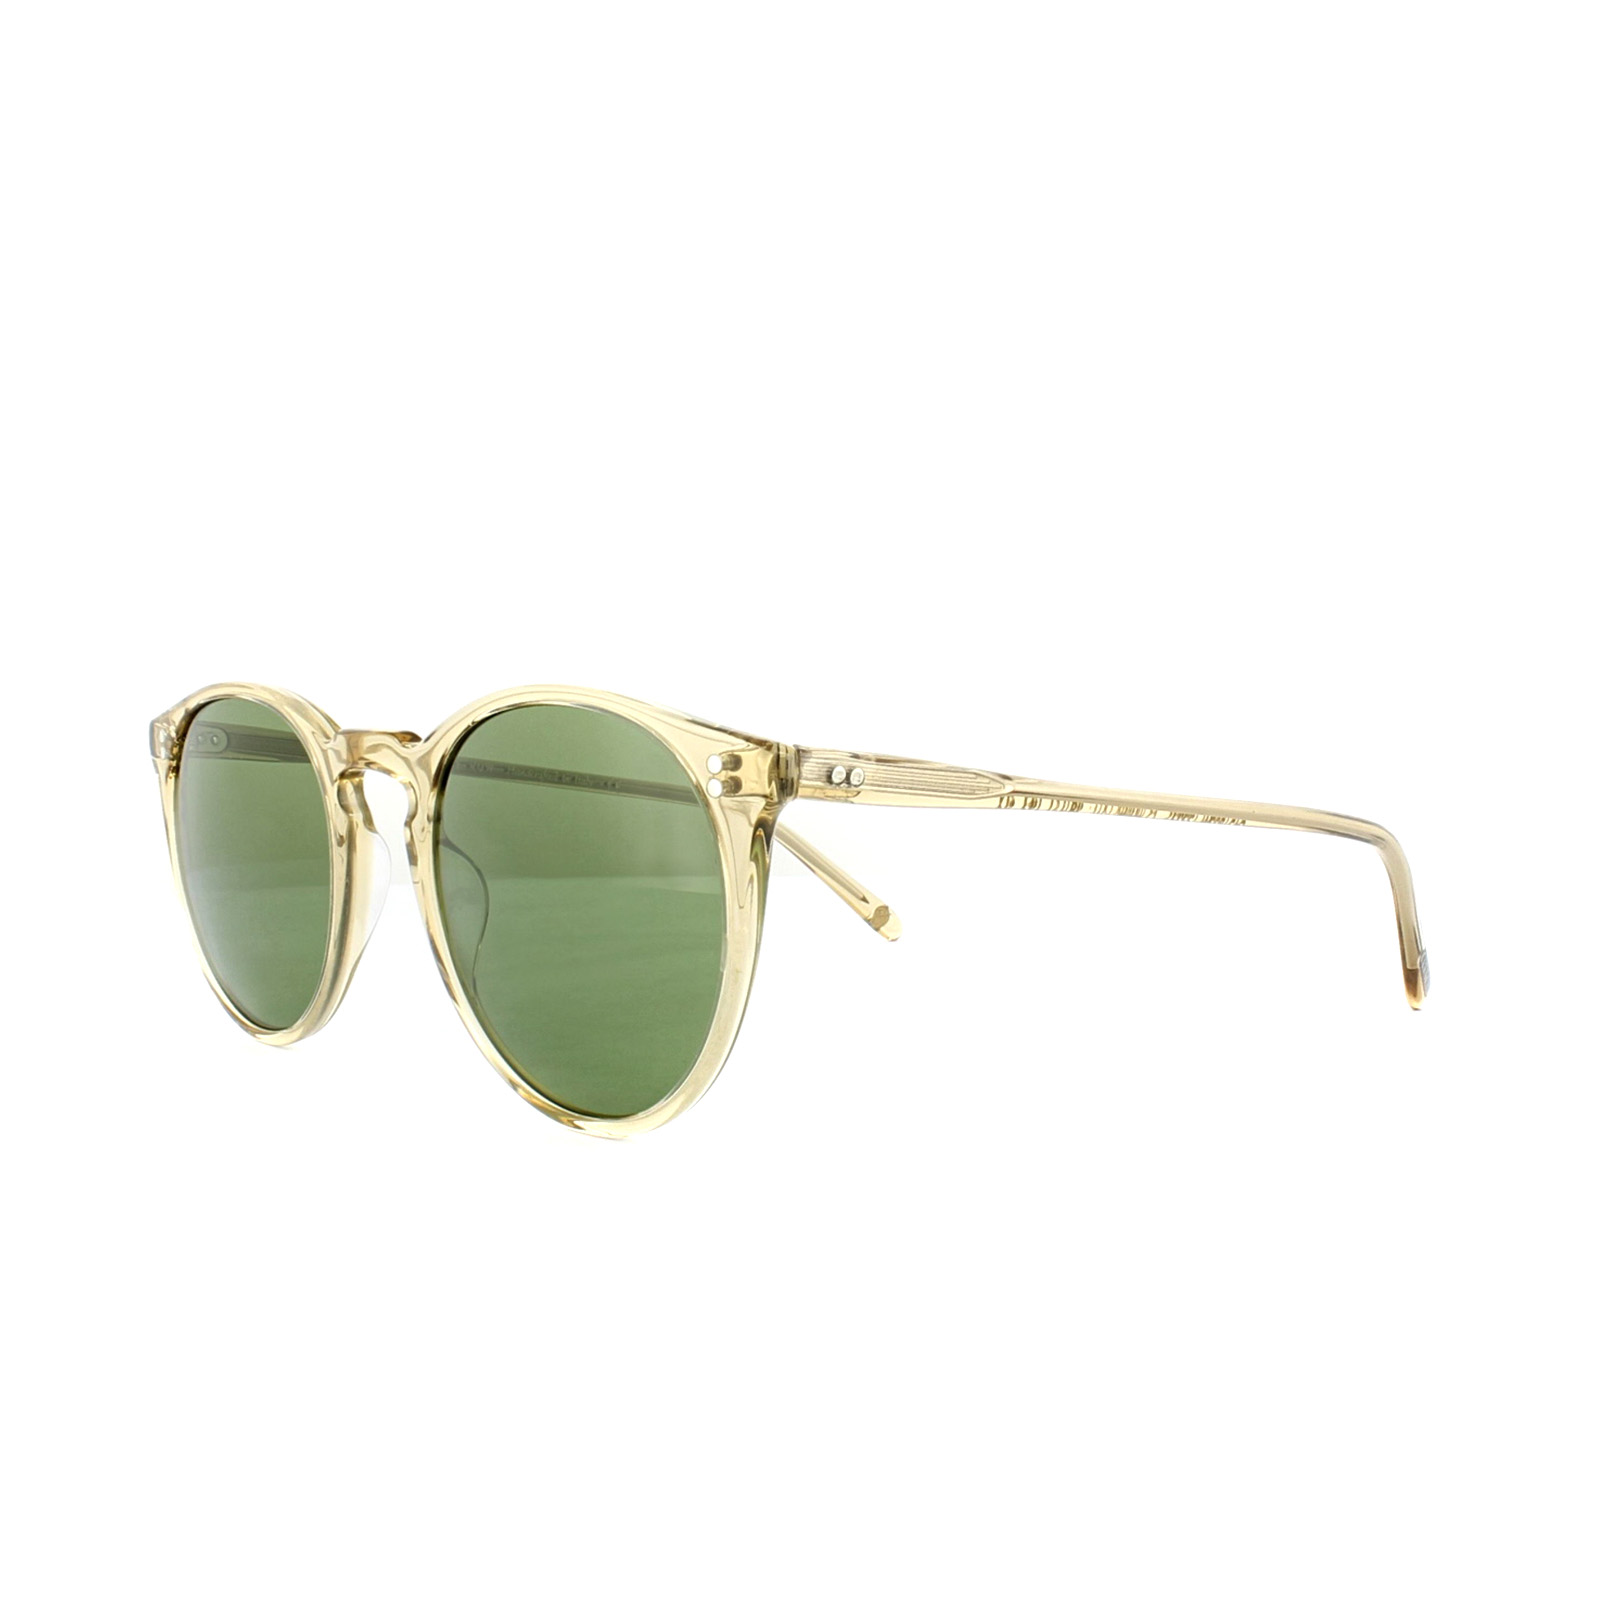 Peoples Nyc Oliver O'malley 5183sm Sunglasses 435cARjLq